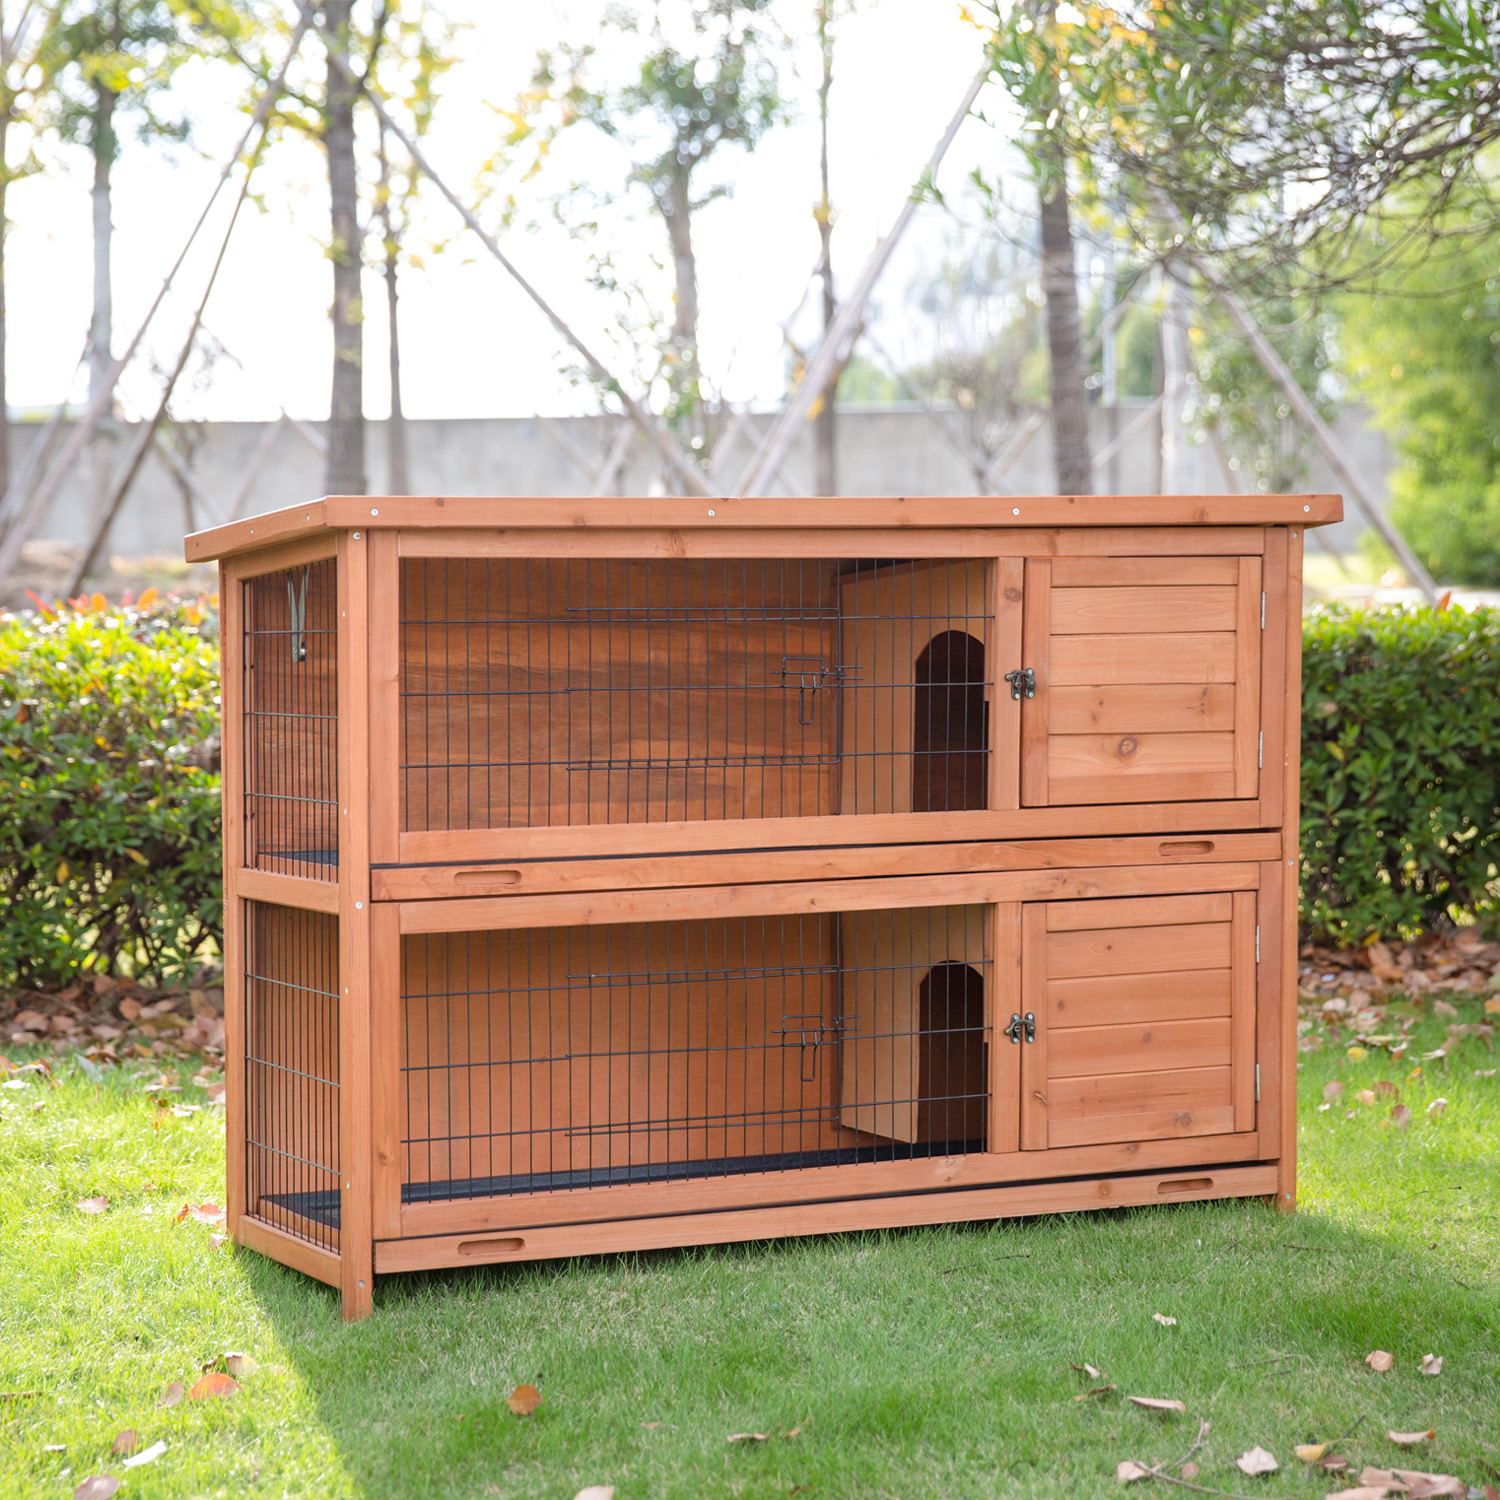 Kinbor Wooden Rabbit Hutch Bunny Cage Small Animal House Pet Cage